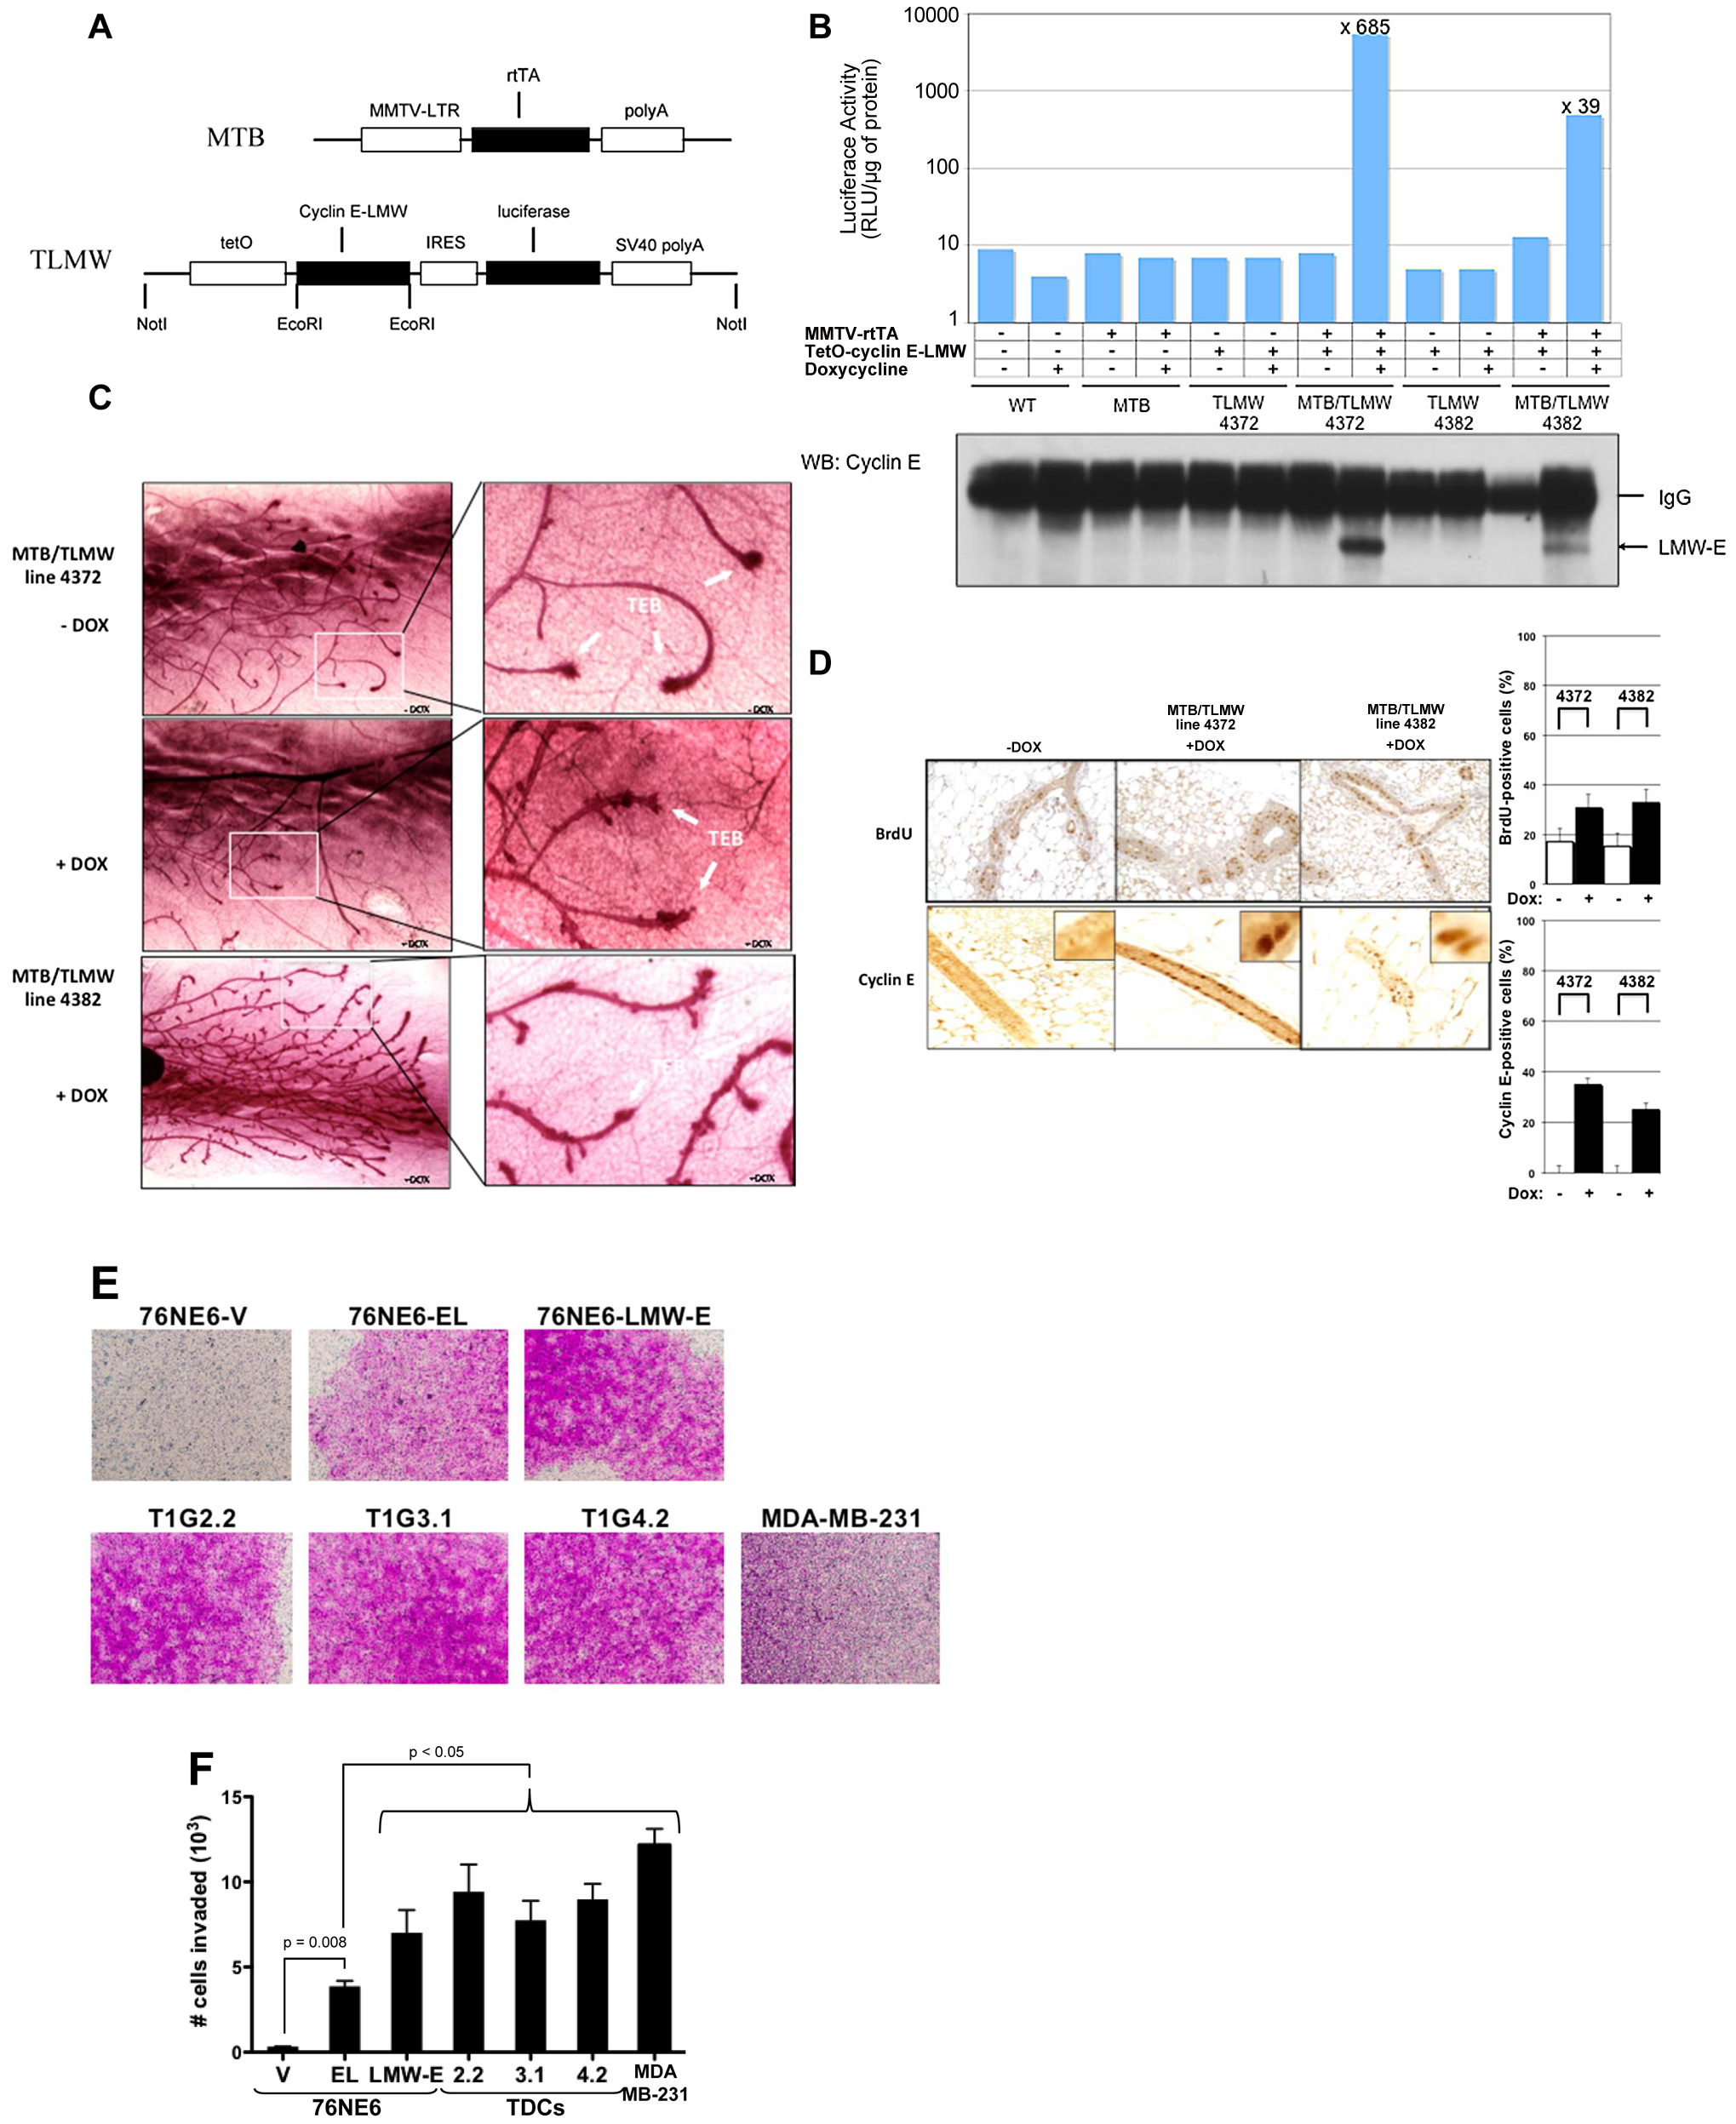 LMW-E induces ductal hyperplasia in vivo and invasion in Boyden chamber assays.